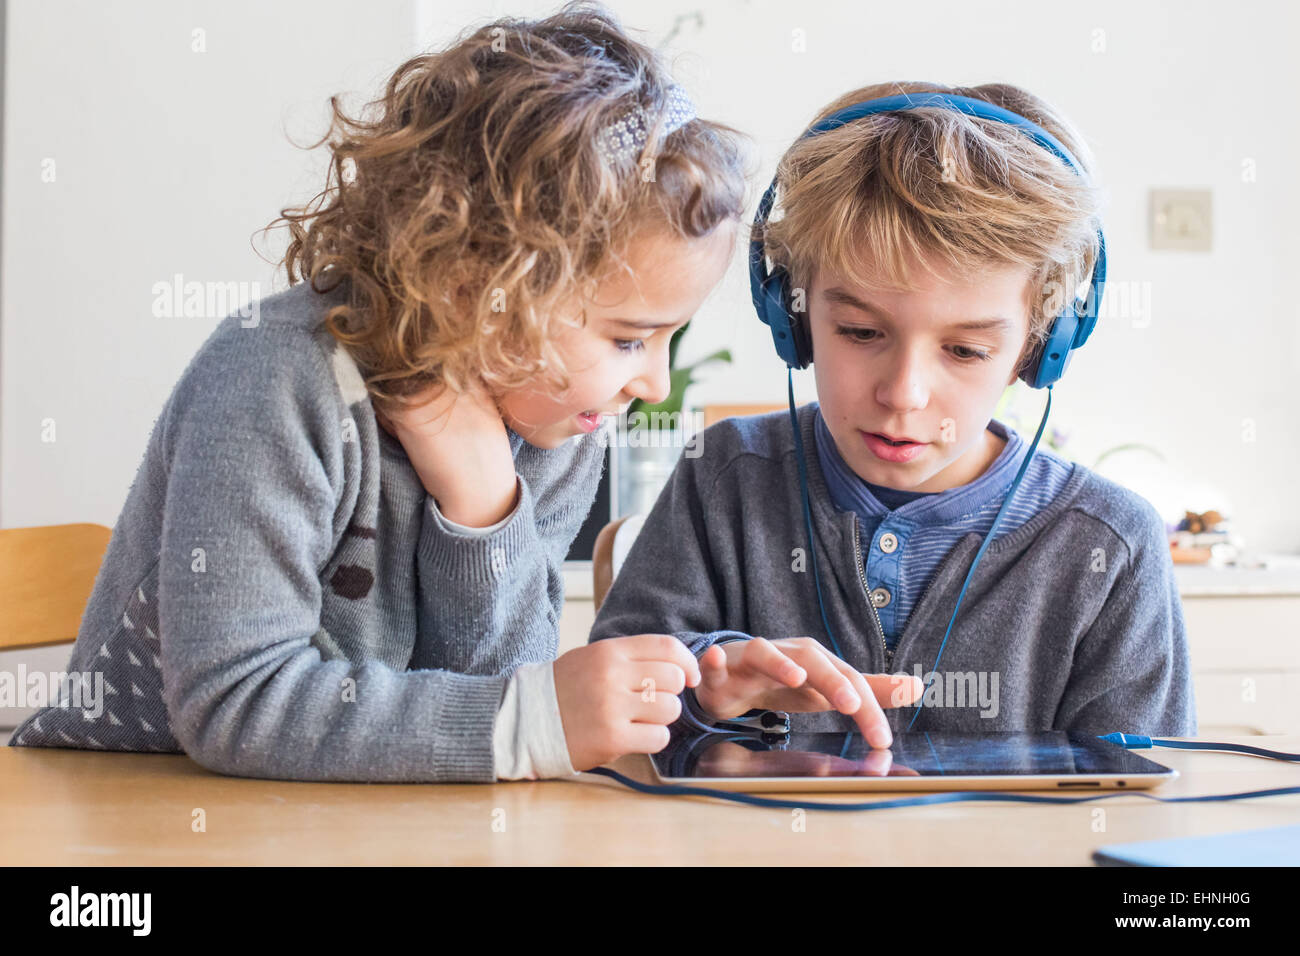 5 year old girl and 8 year old boy using tablet computer. - Stock Image